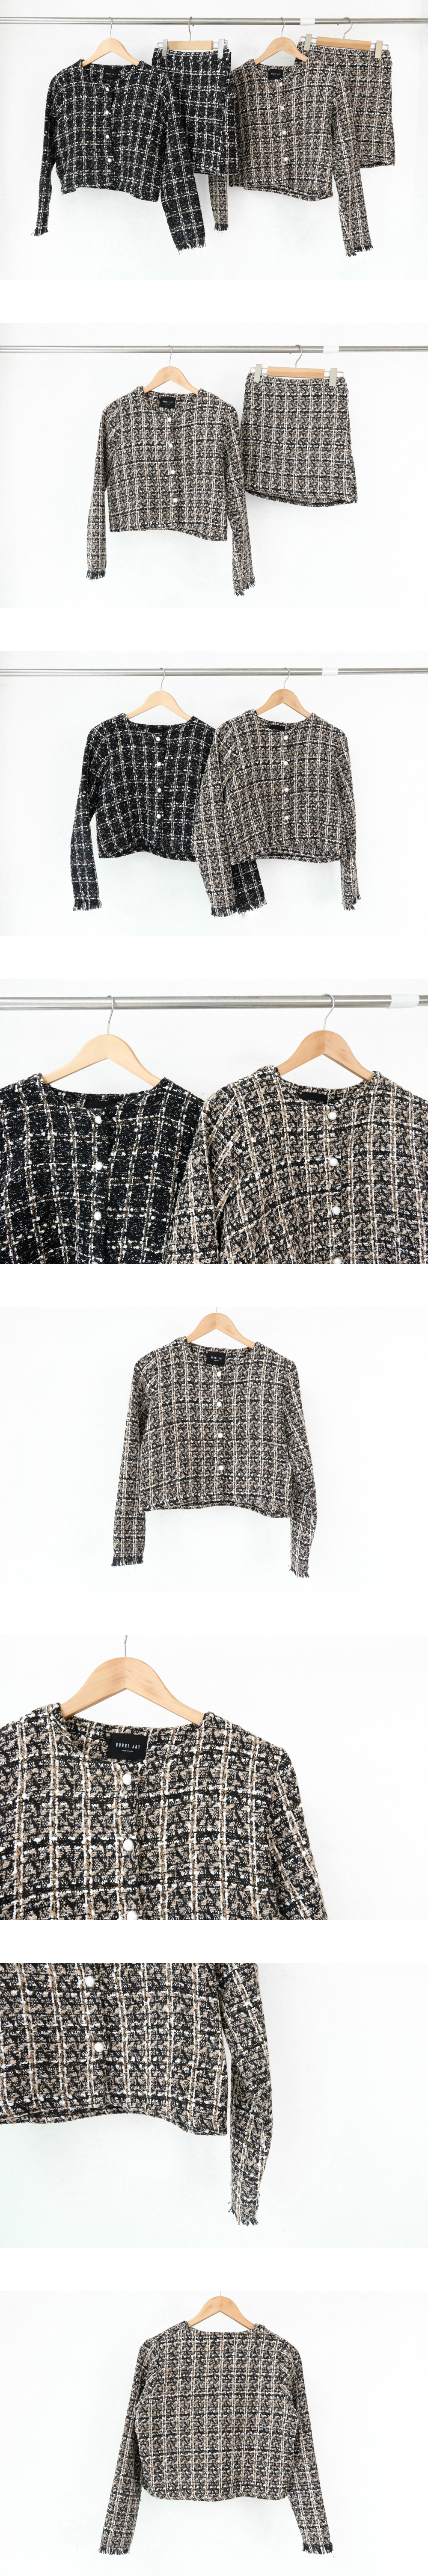 C-sha tweed blouse jacket